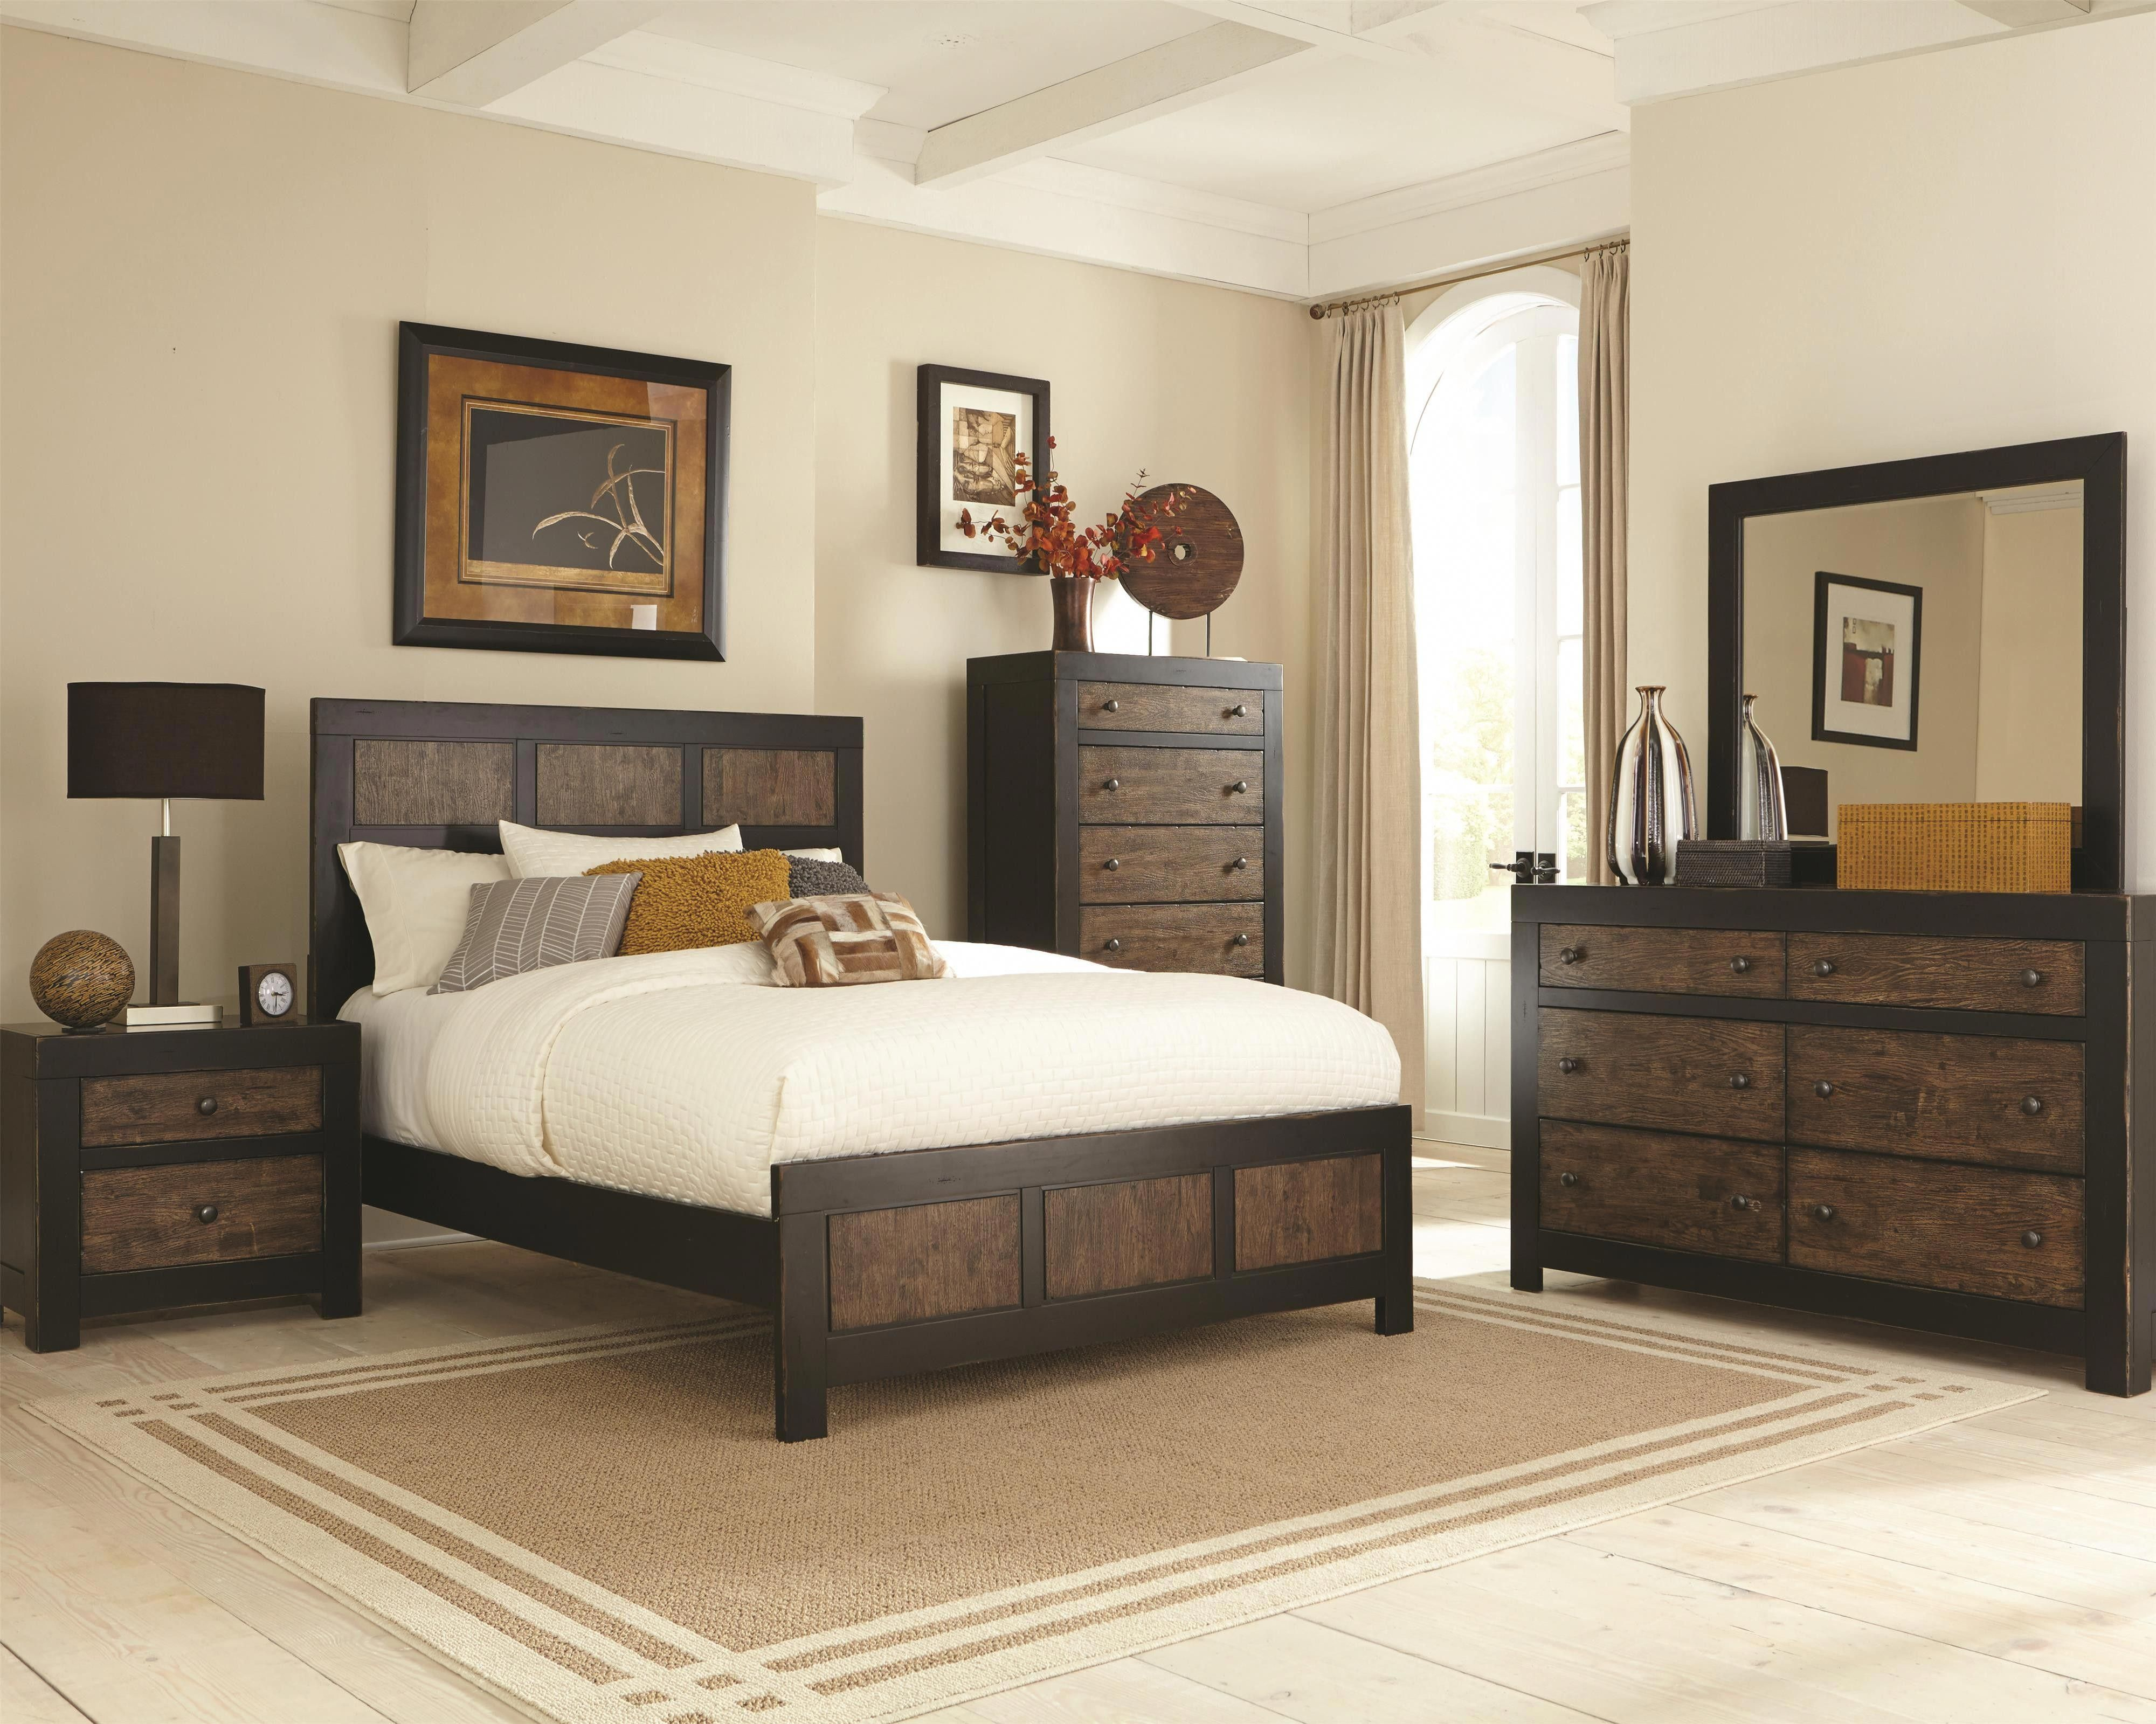 king bedroom sets cool single beds for teens bunk beds for adults rh in pinterest com